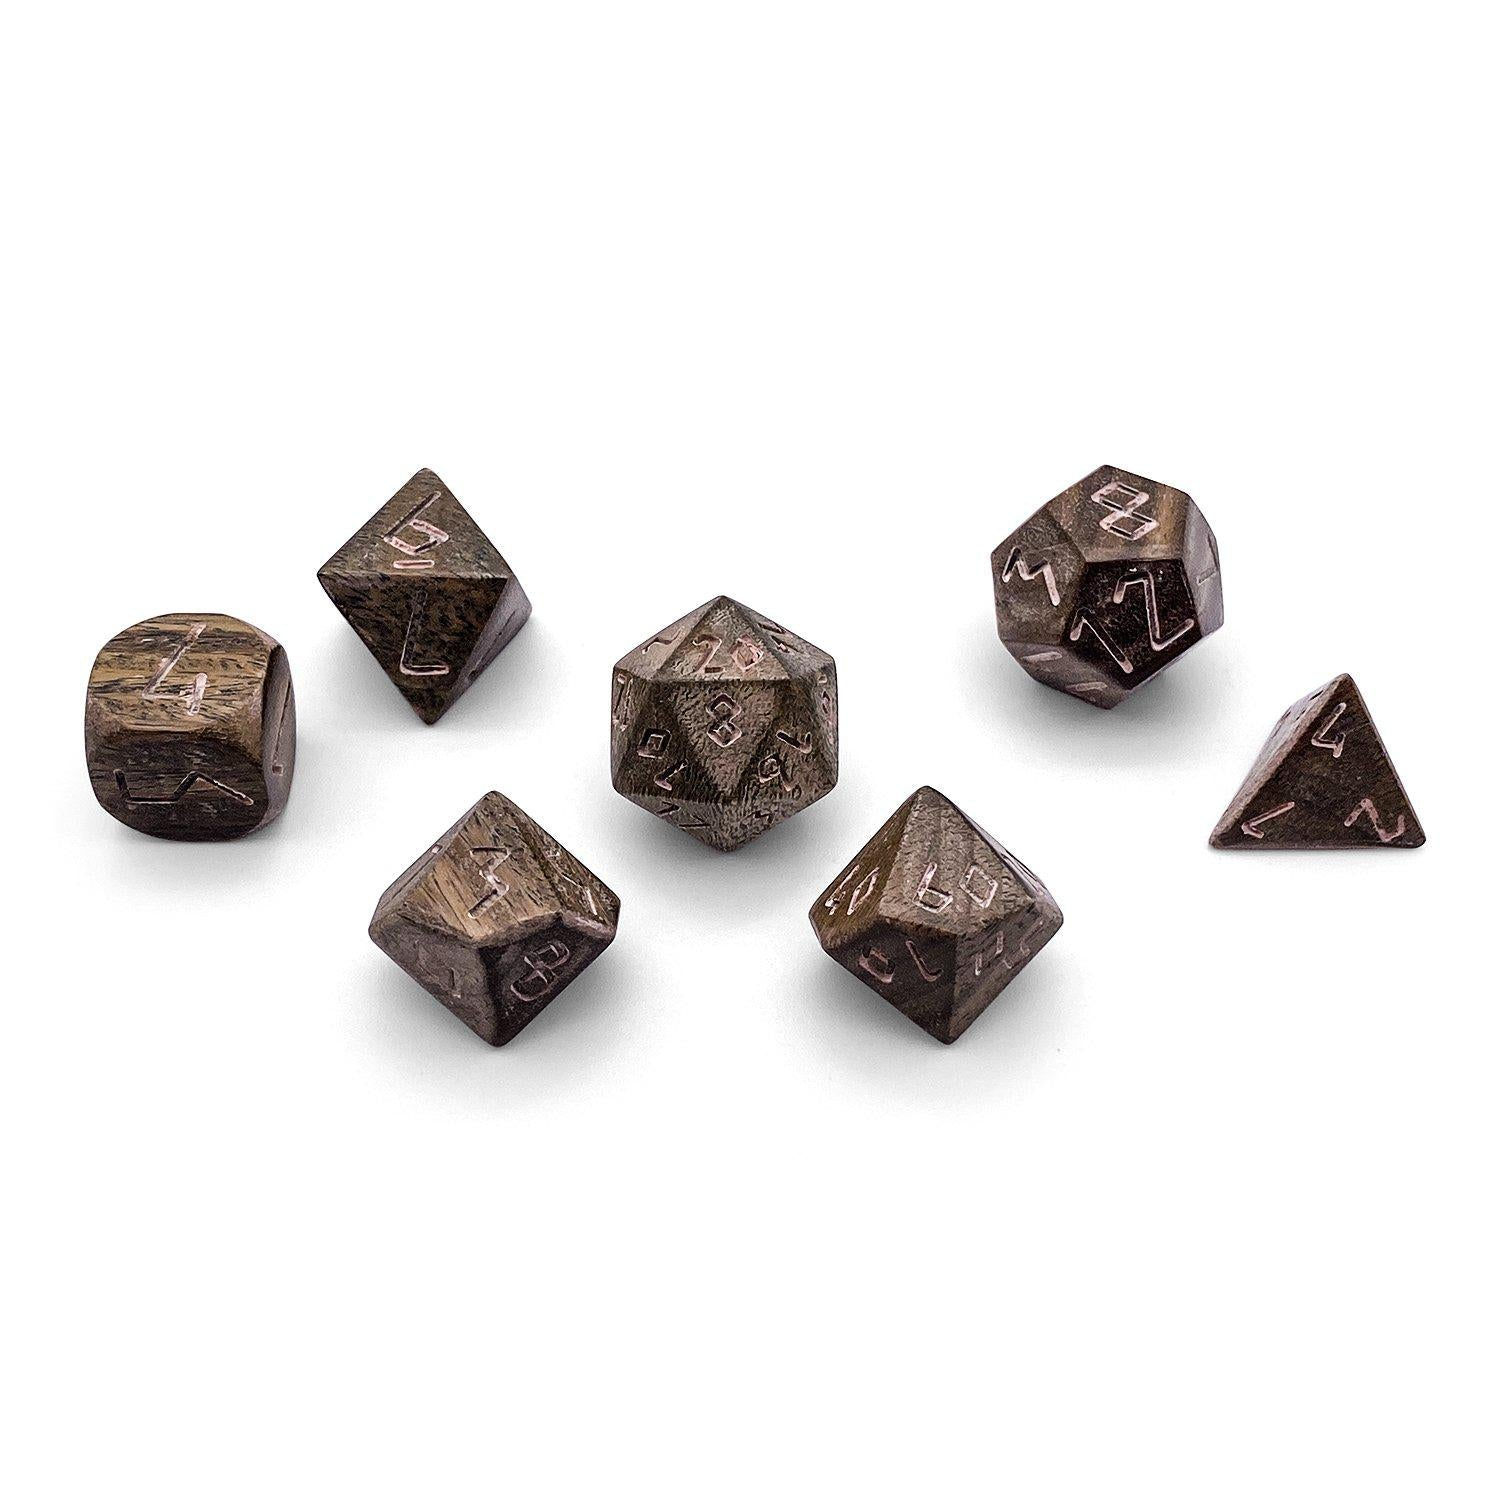 7 piece Wooden Dice Set - Green Sandalwood